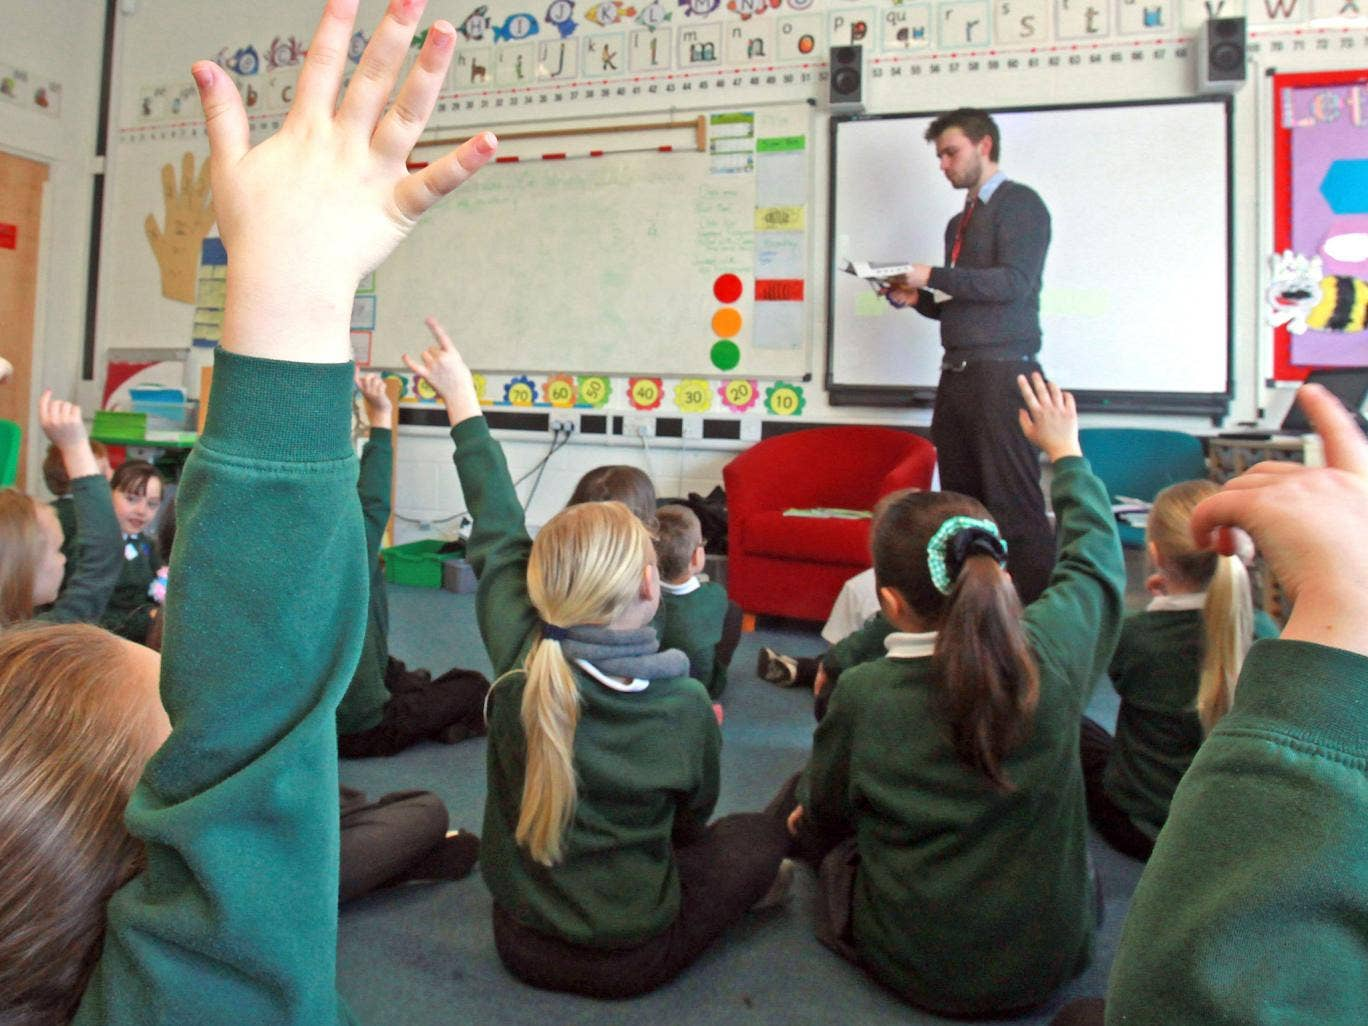 The new guidance applies to England's primary and secondary schools